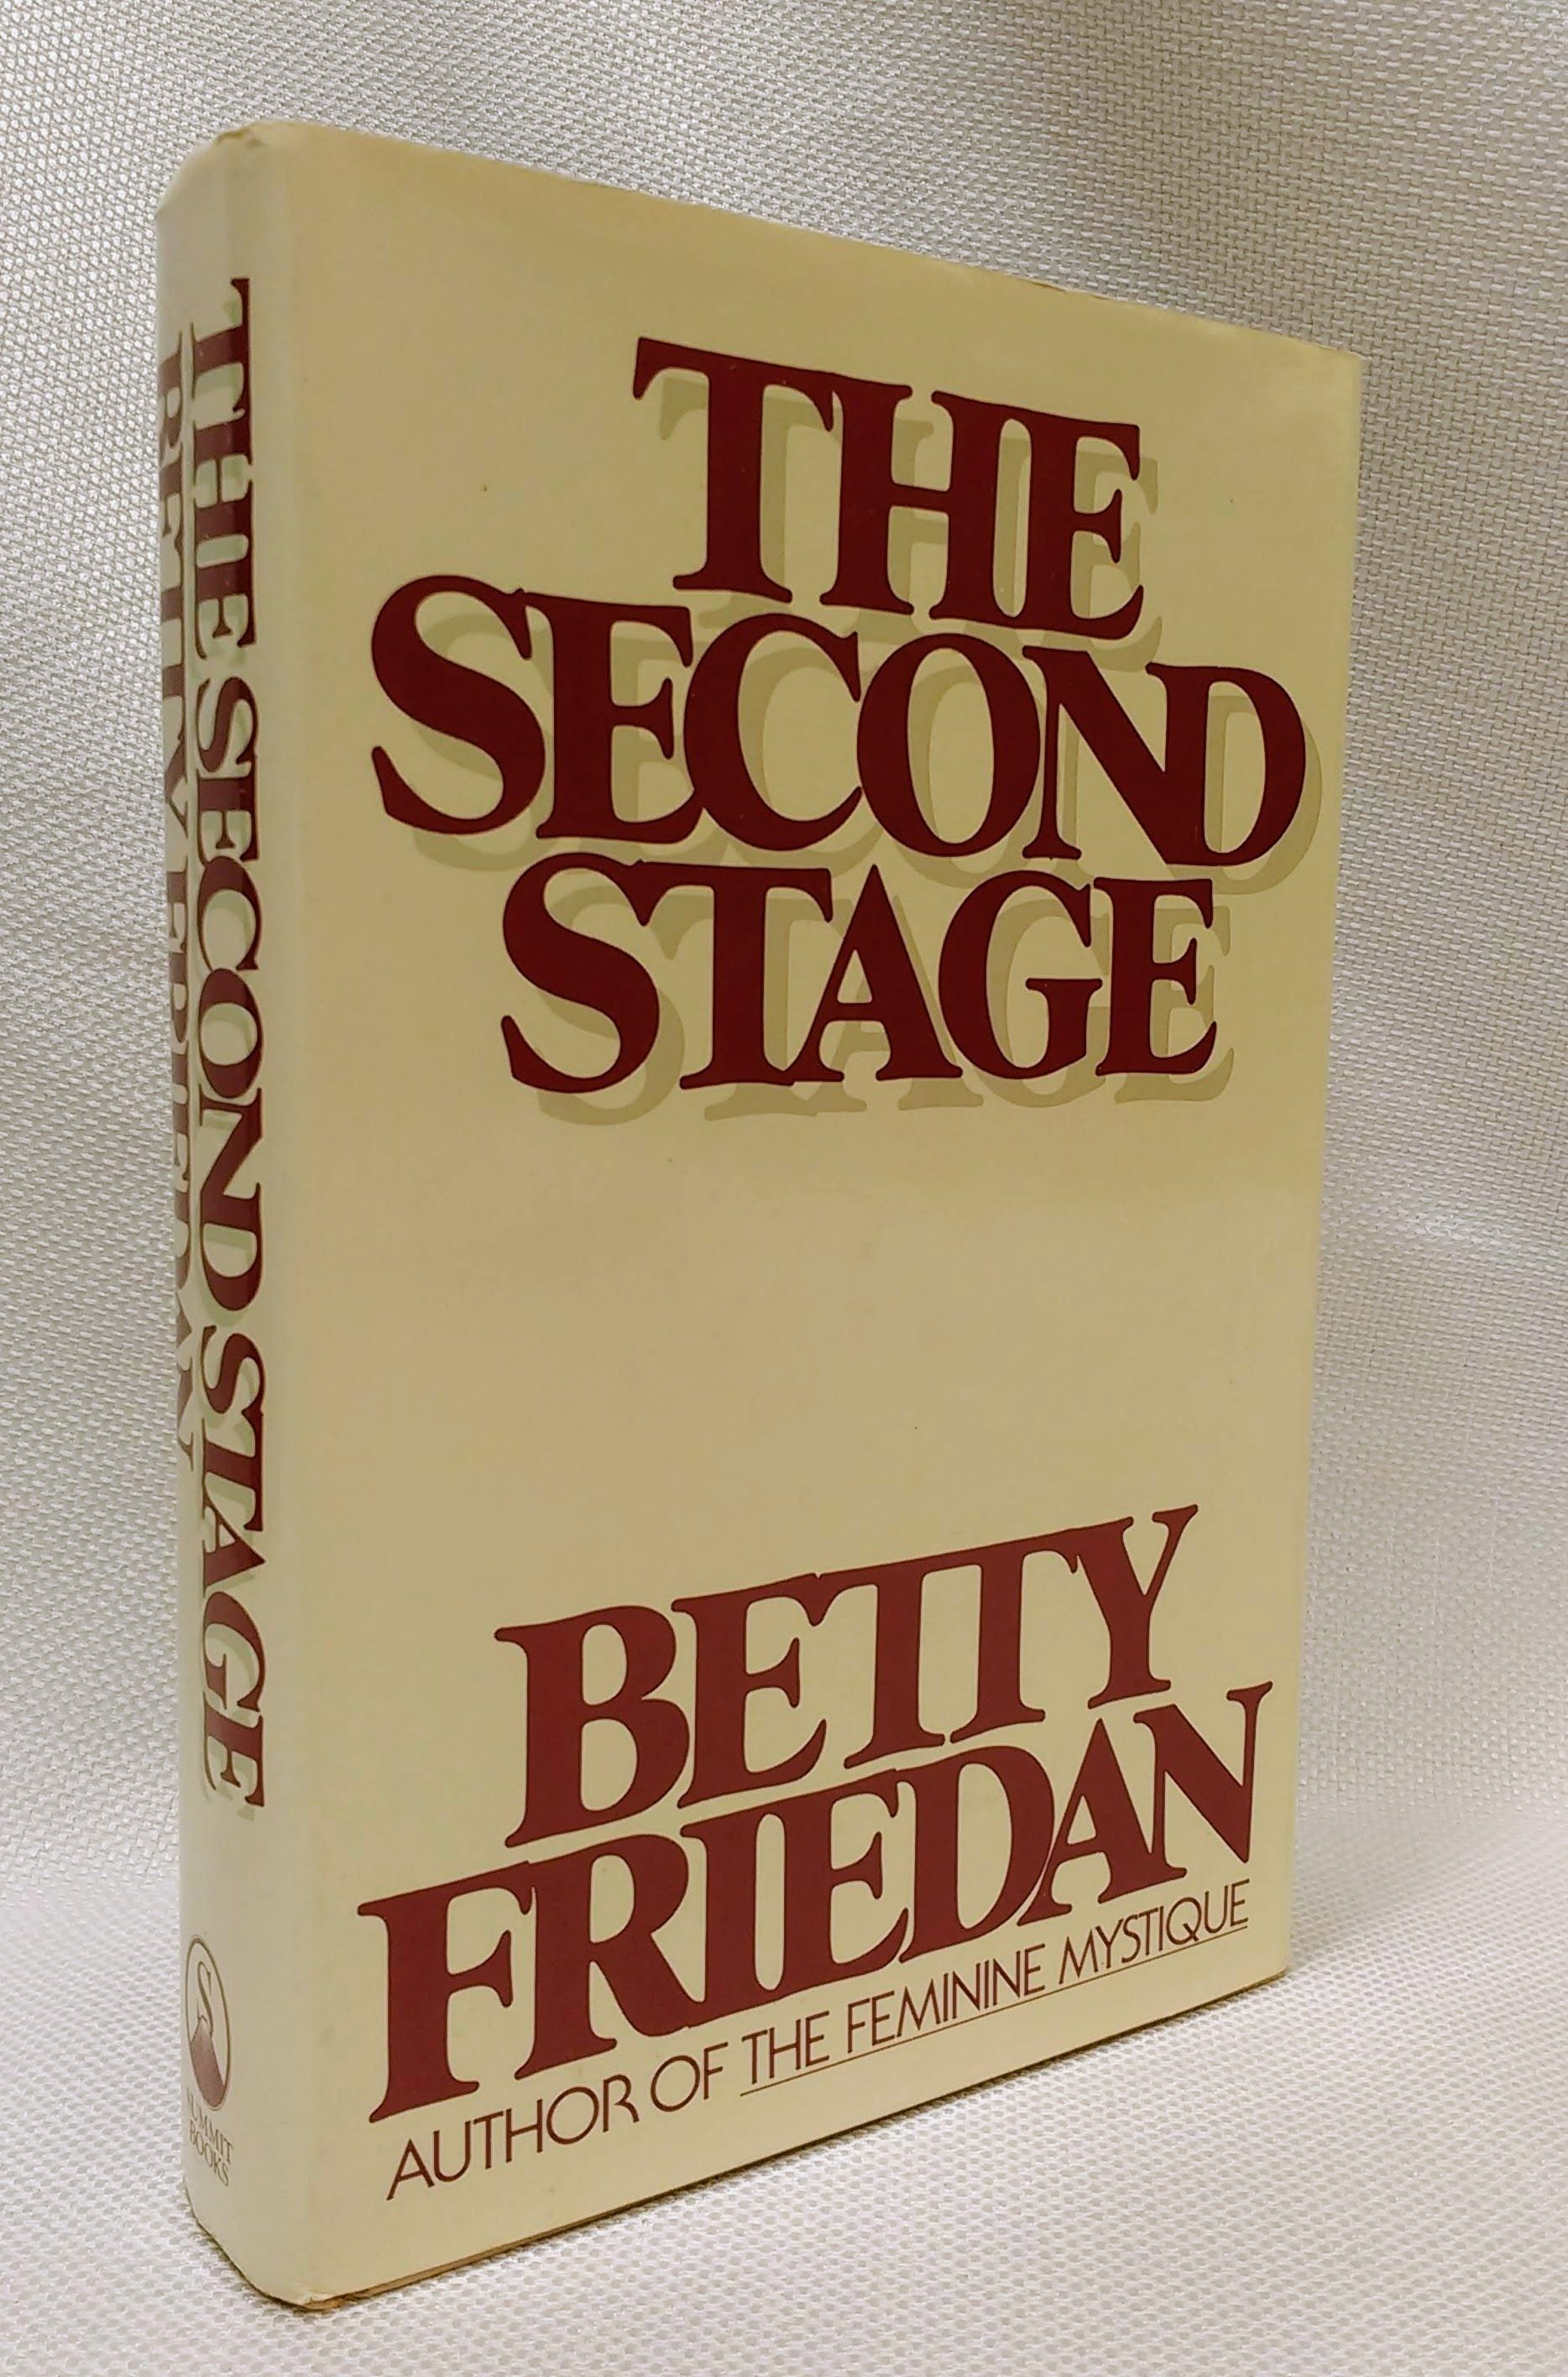 The Second Stage, Betty Friedan